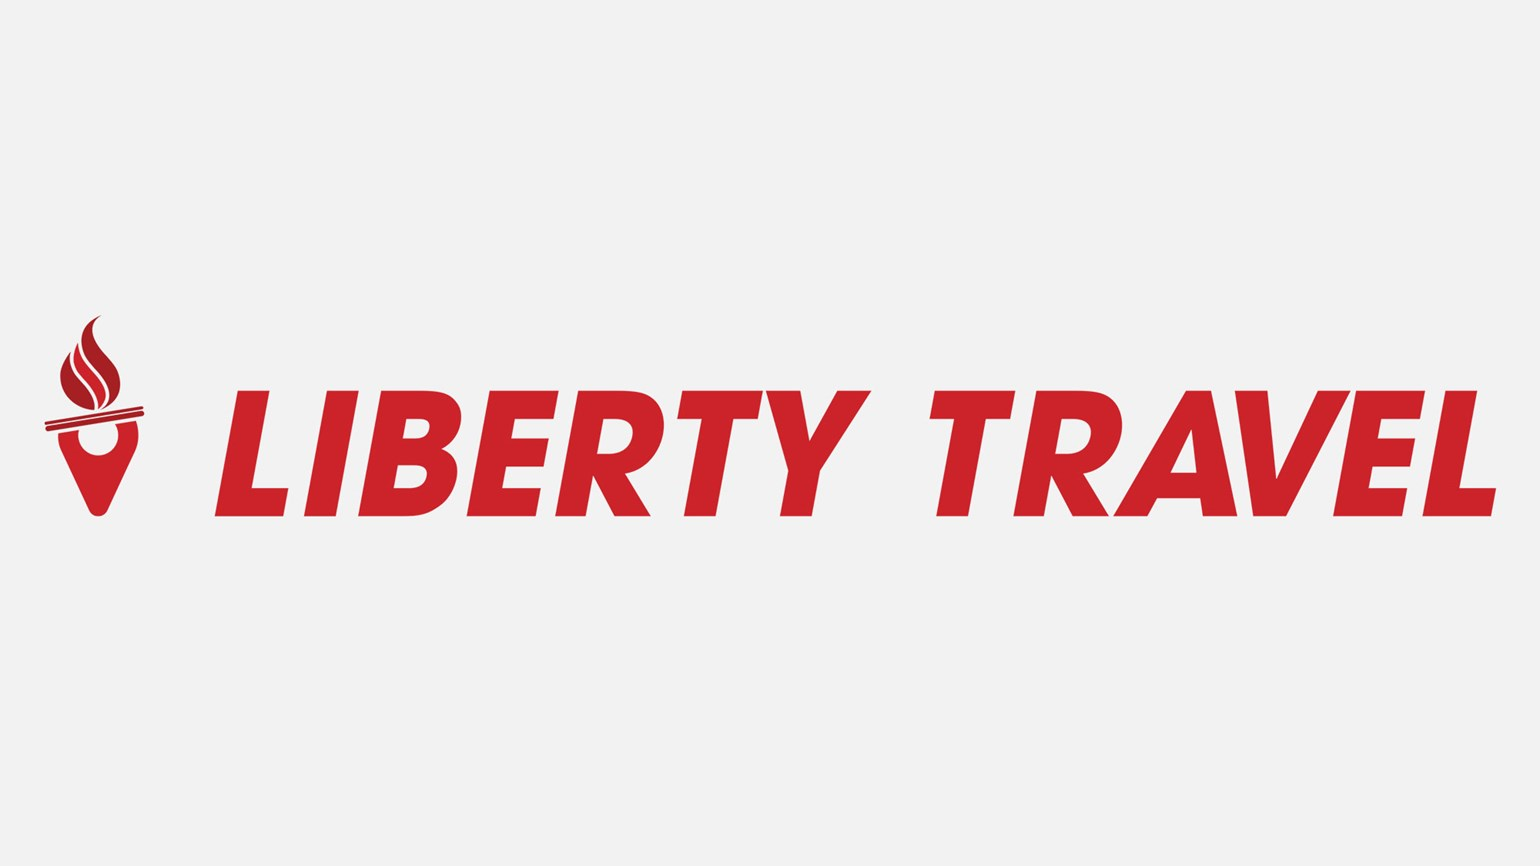 Evolving Liberty Travel unveils new logo